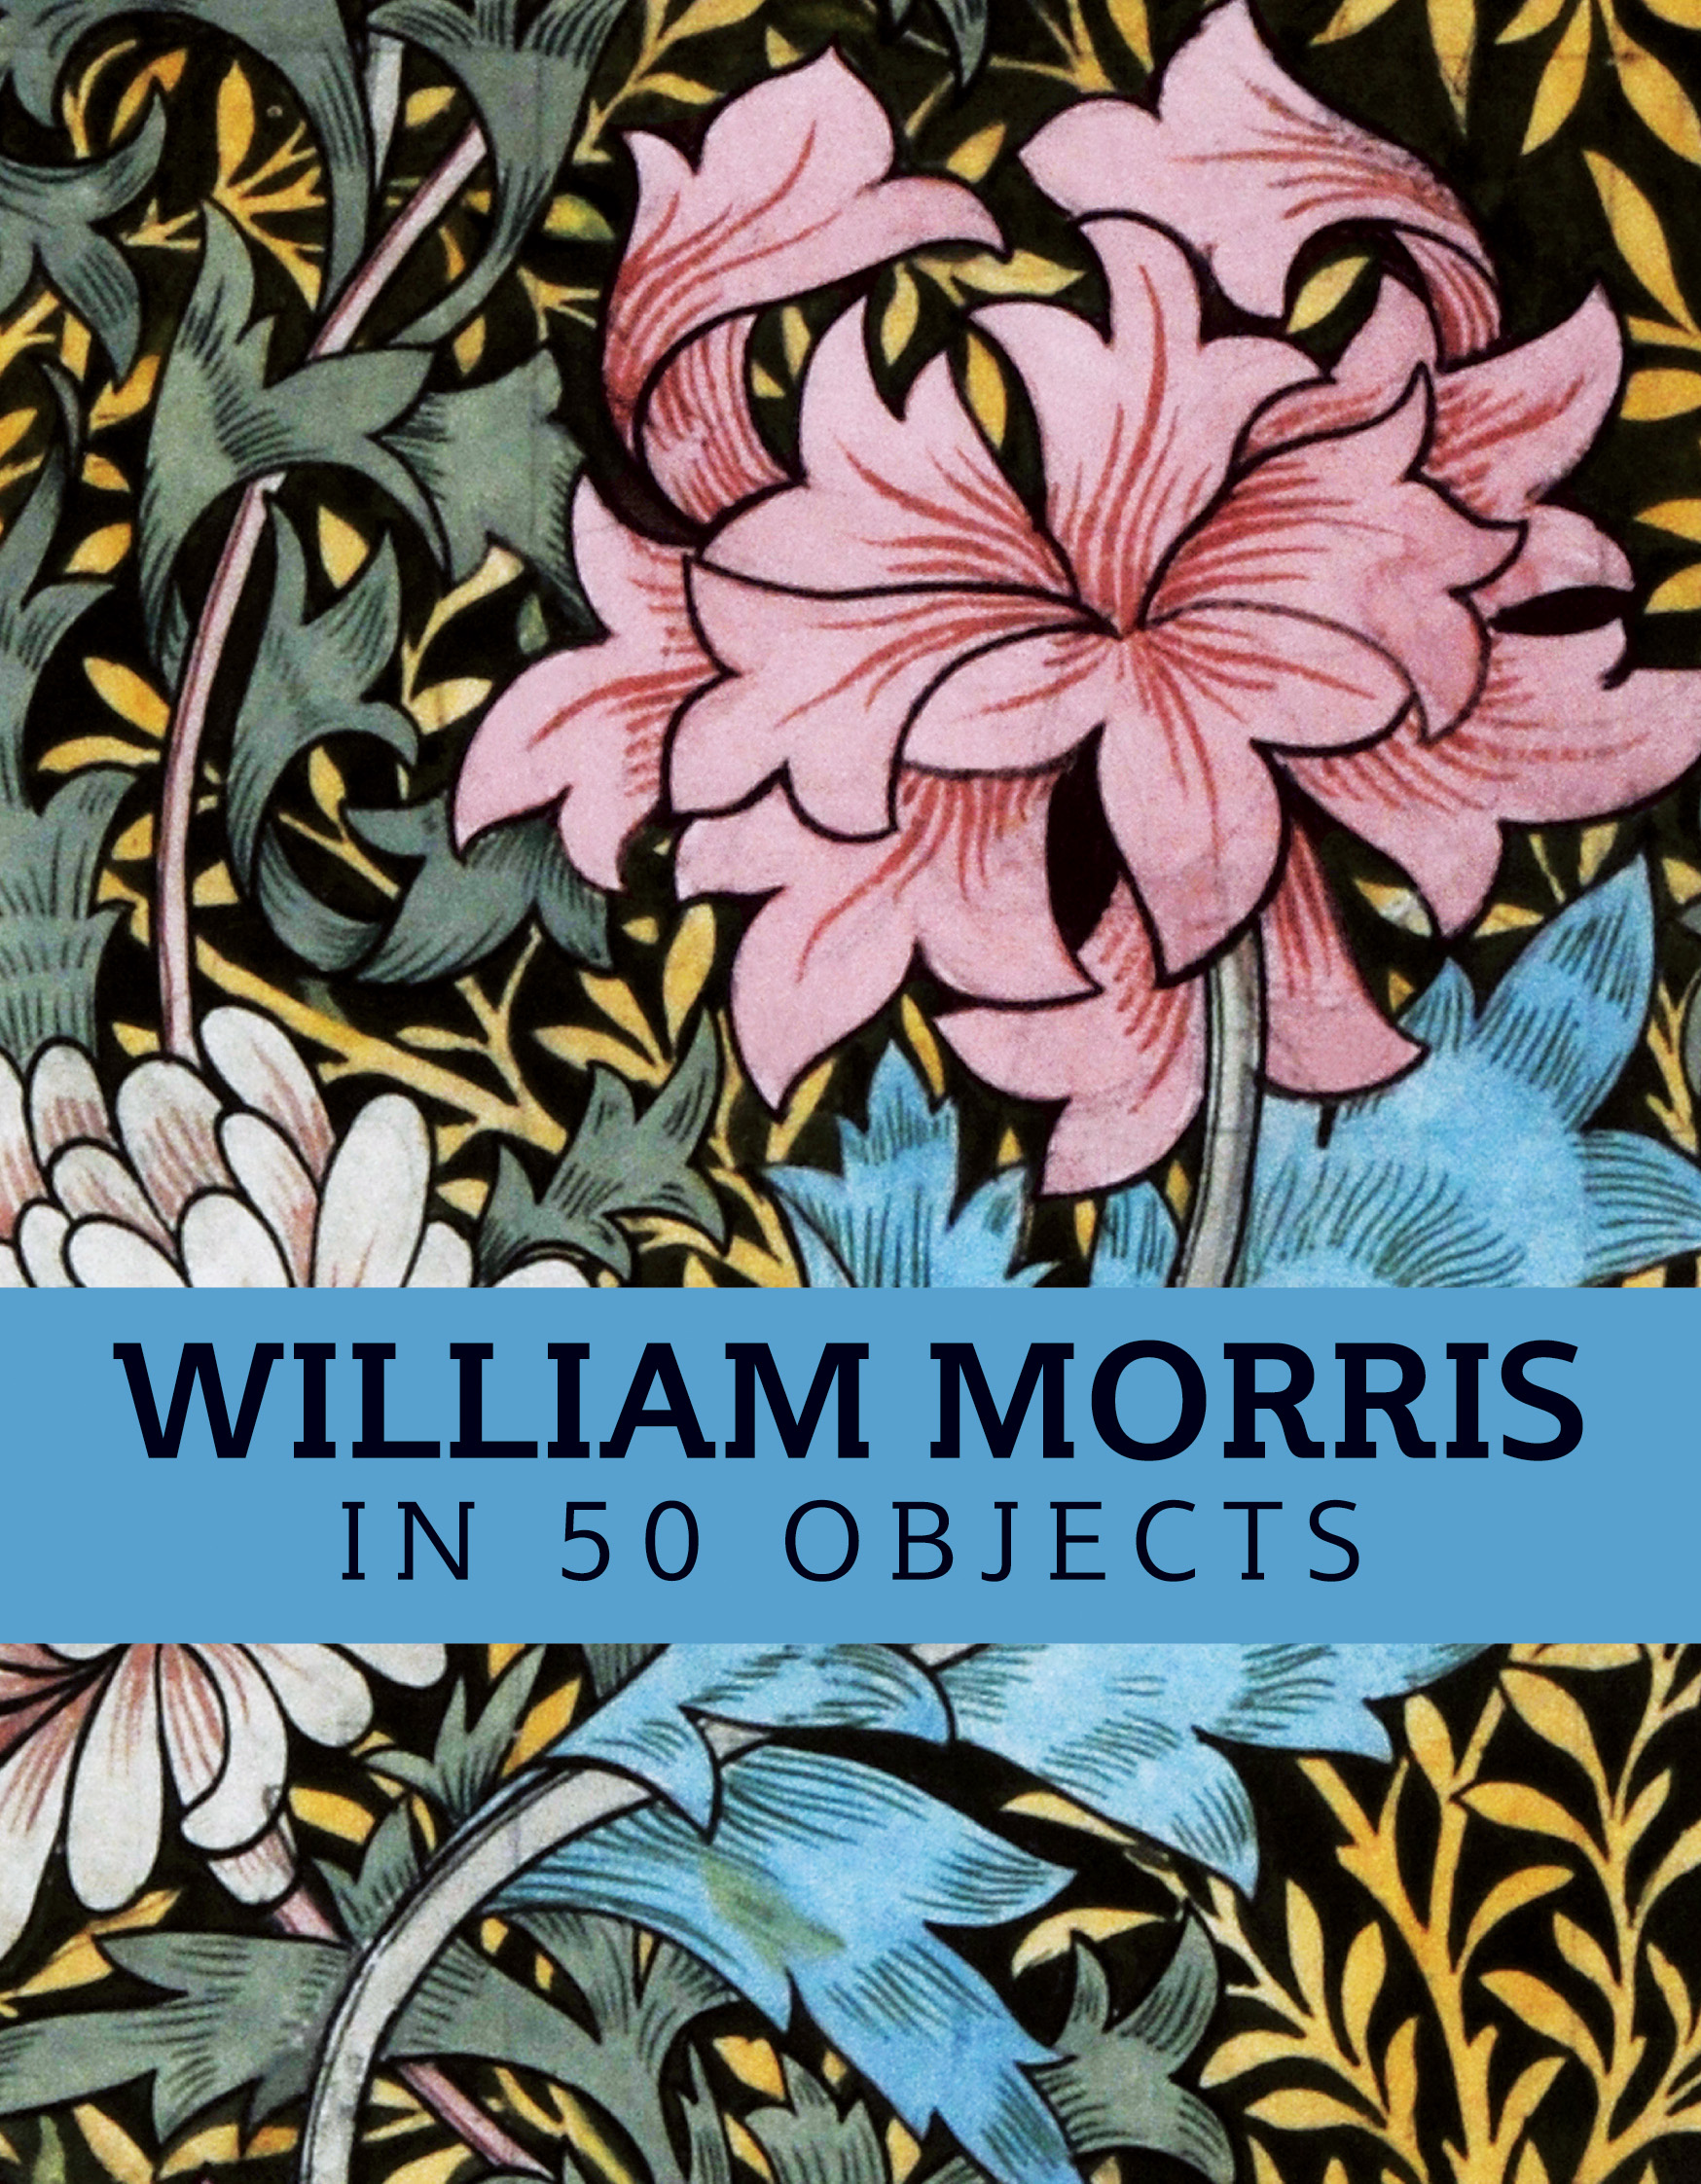 William Morris in 50 Objects